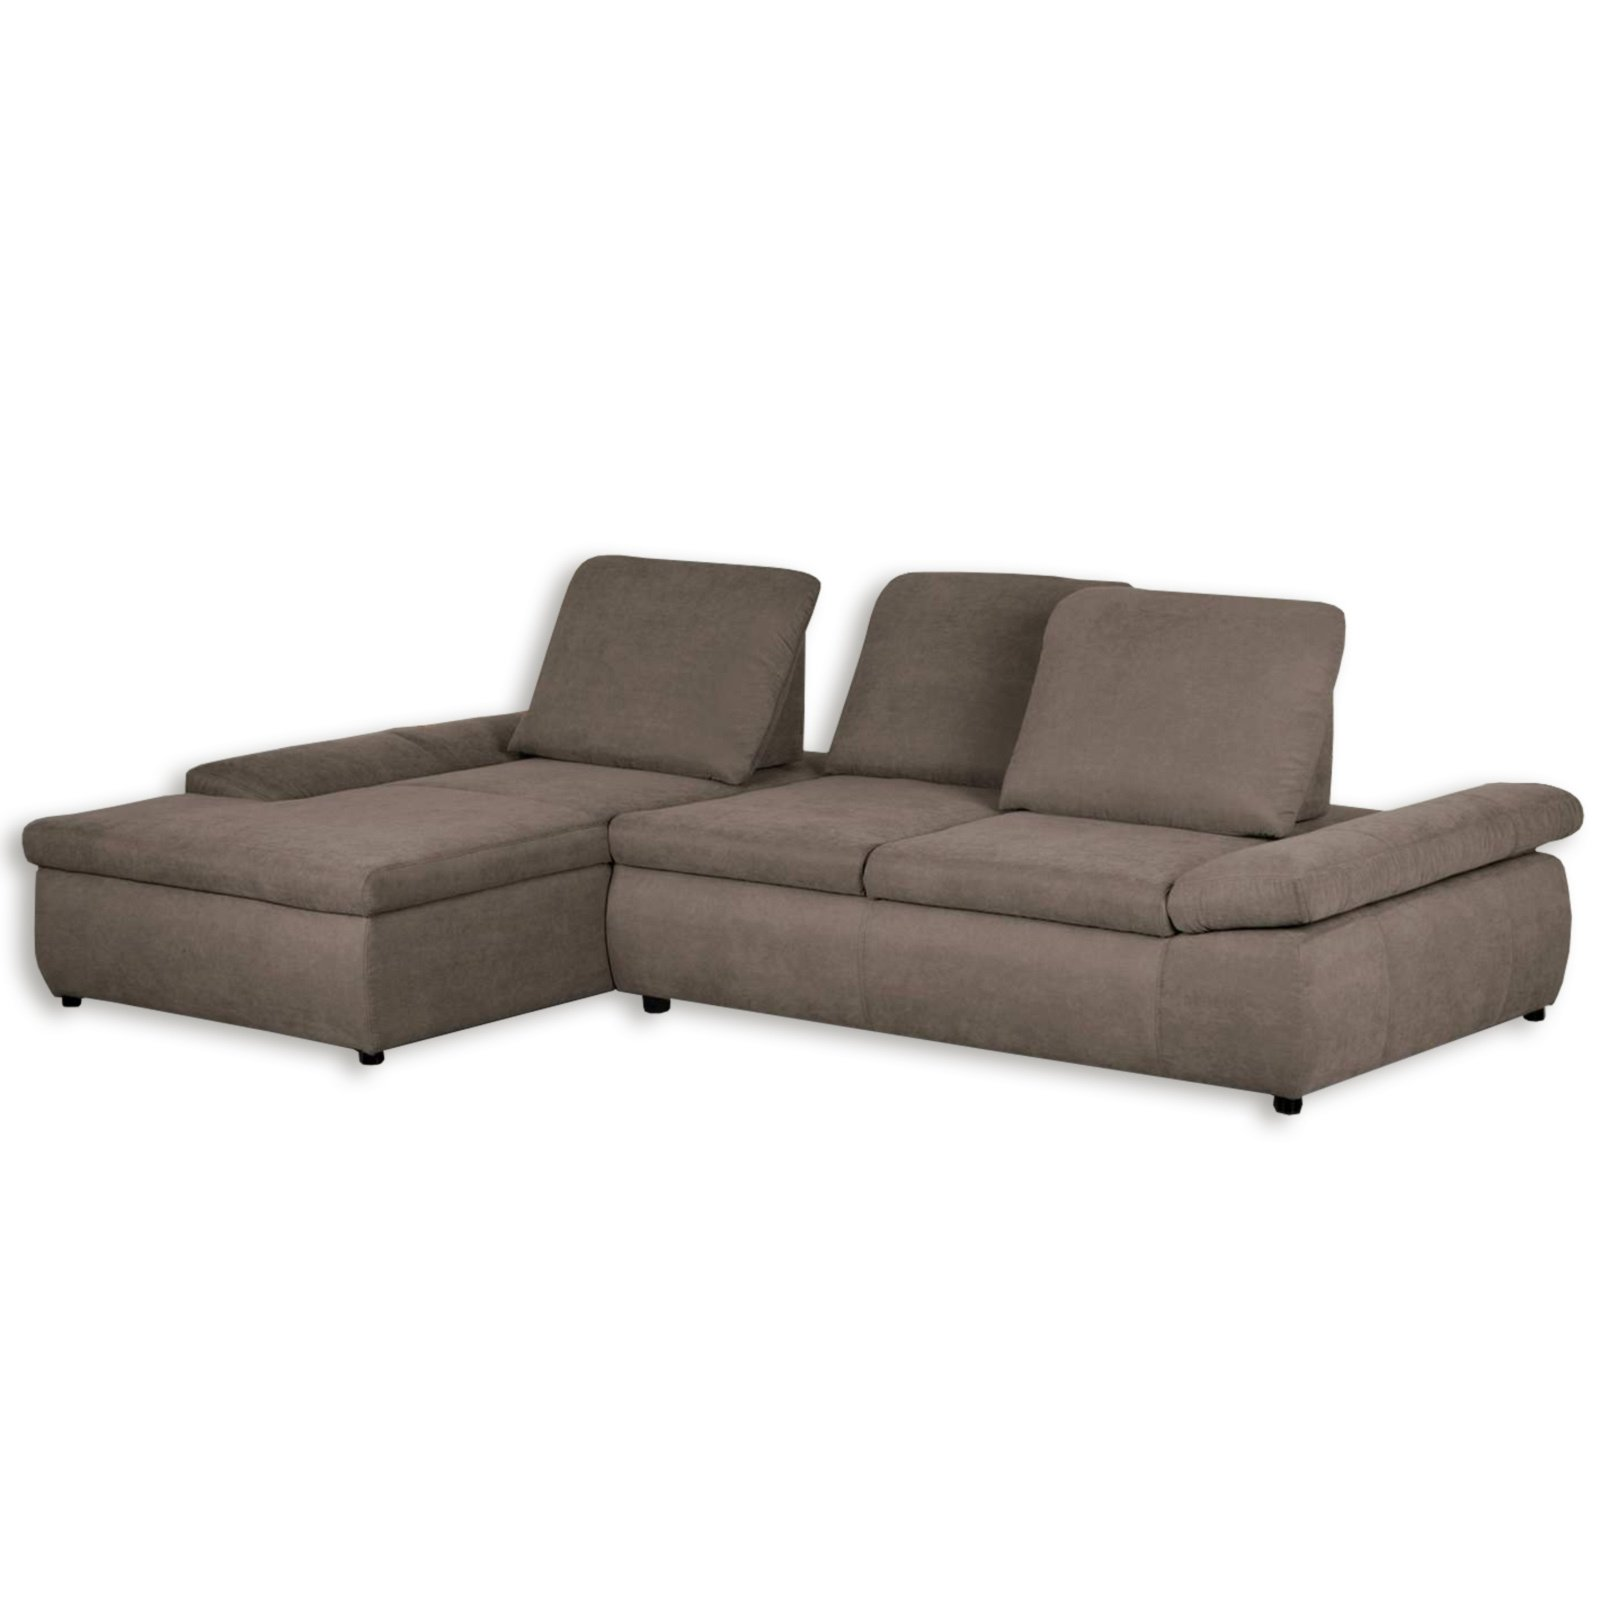 Ecksofa taupe mit funktionen recamiere links for Ecksofa taupe